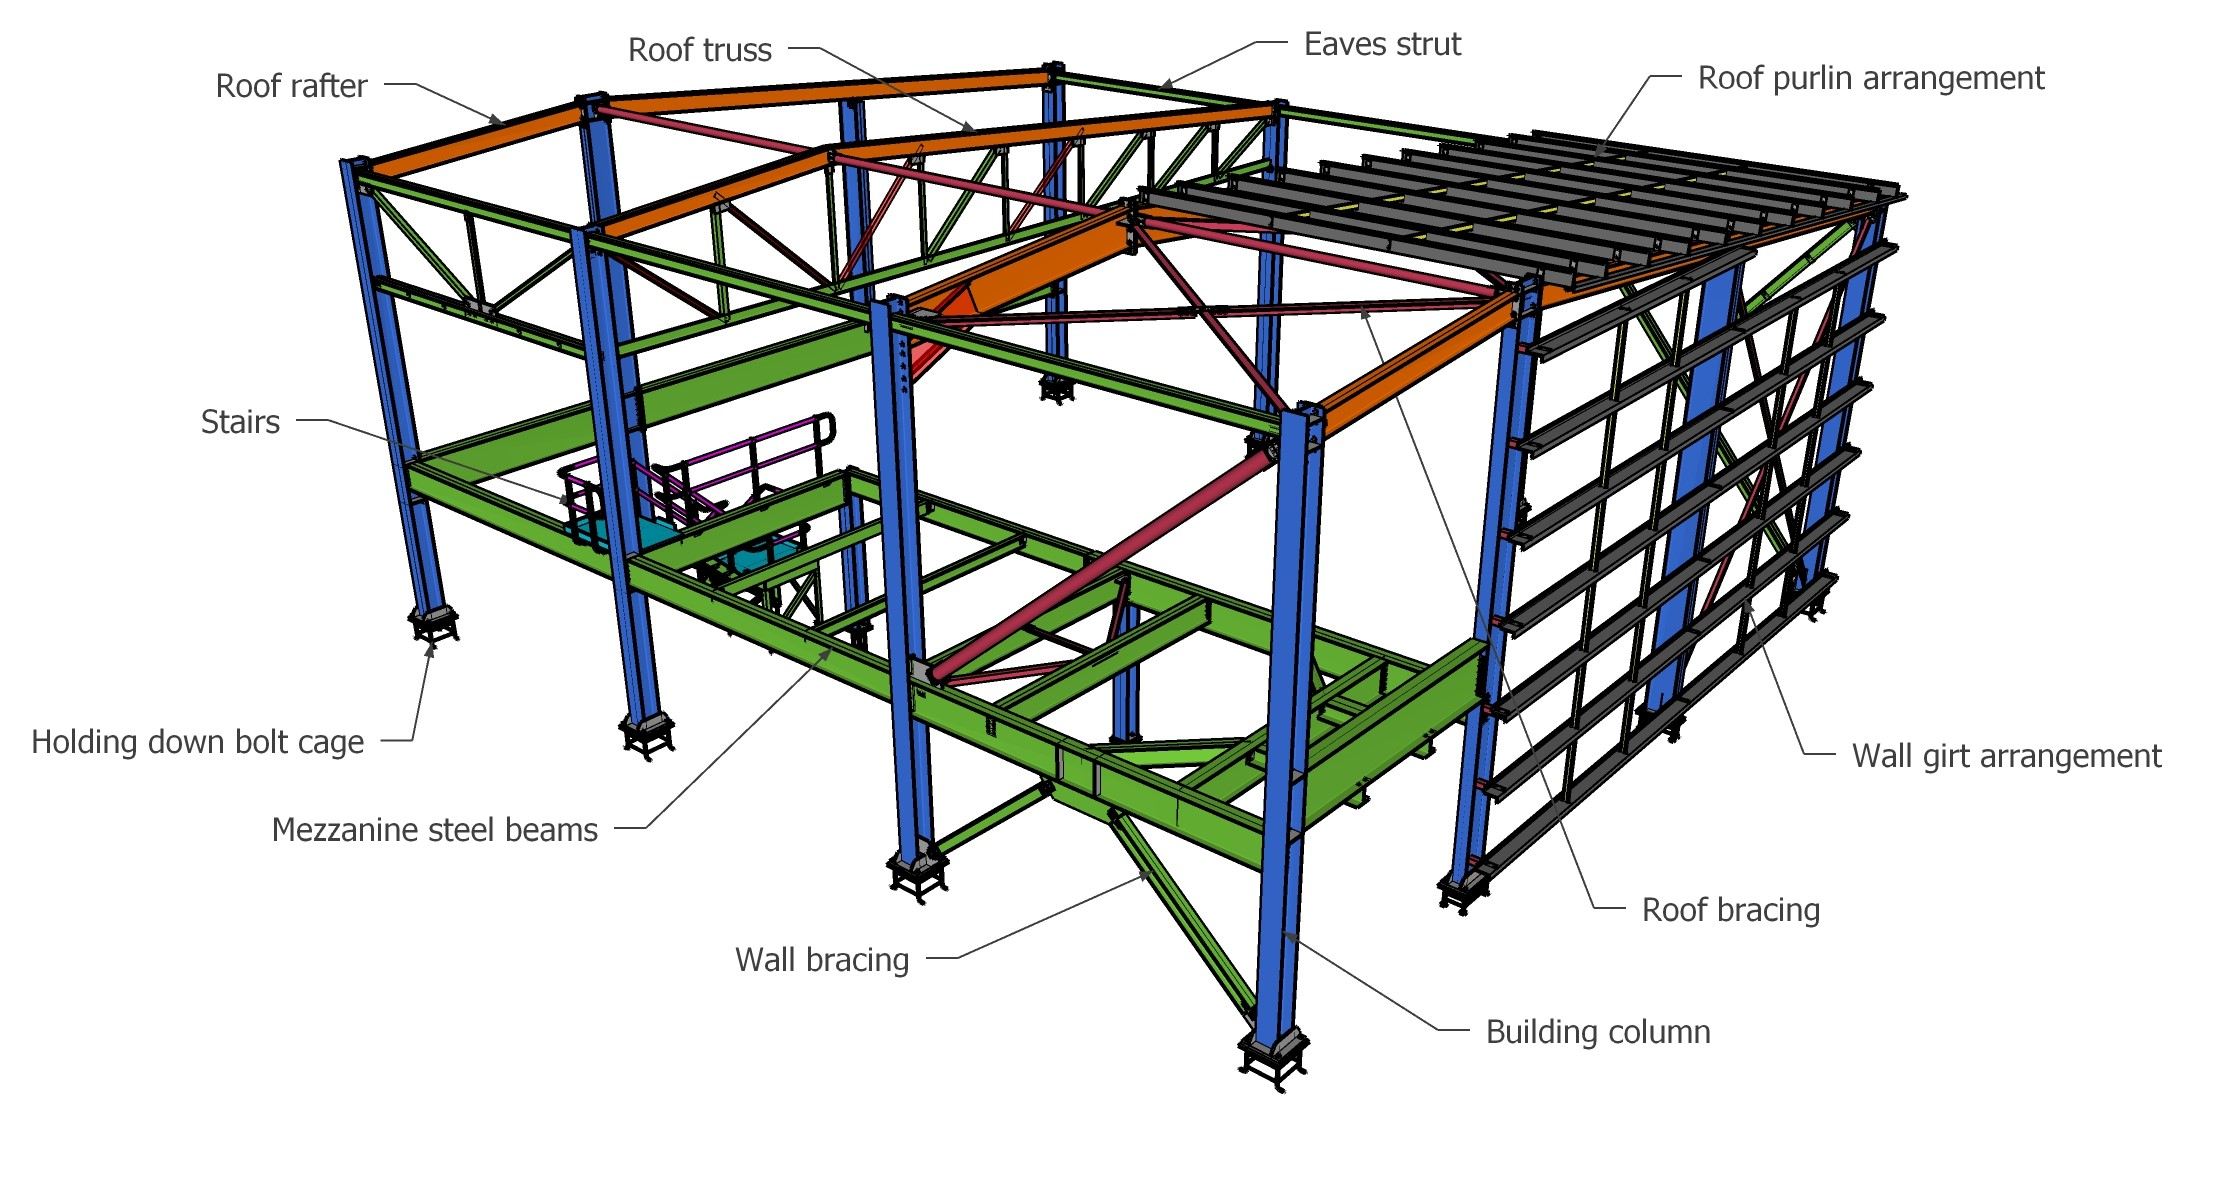 3D Model Provided in IFC Format